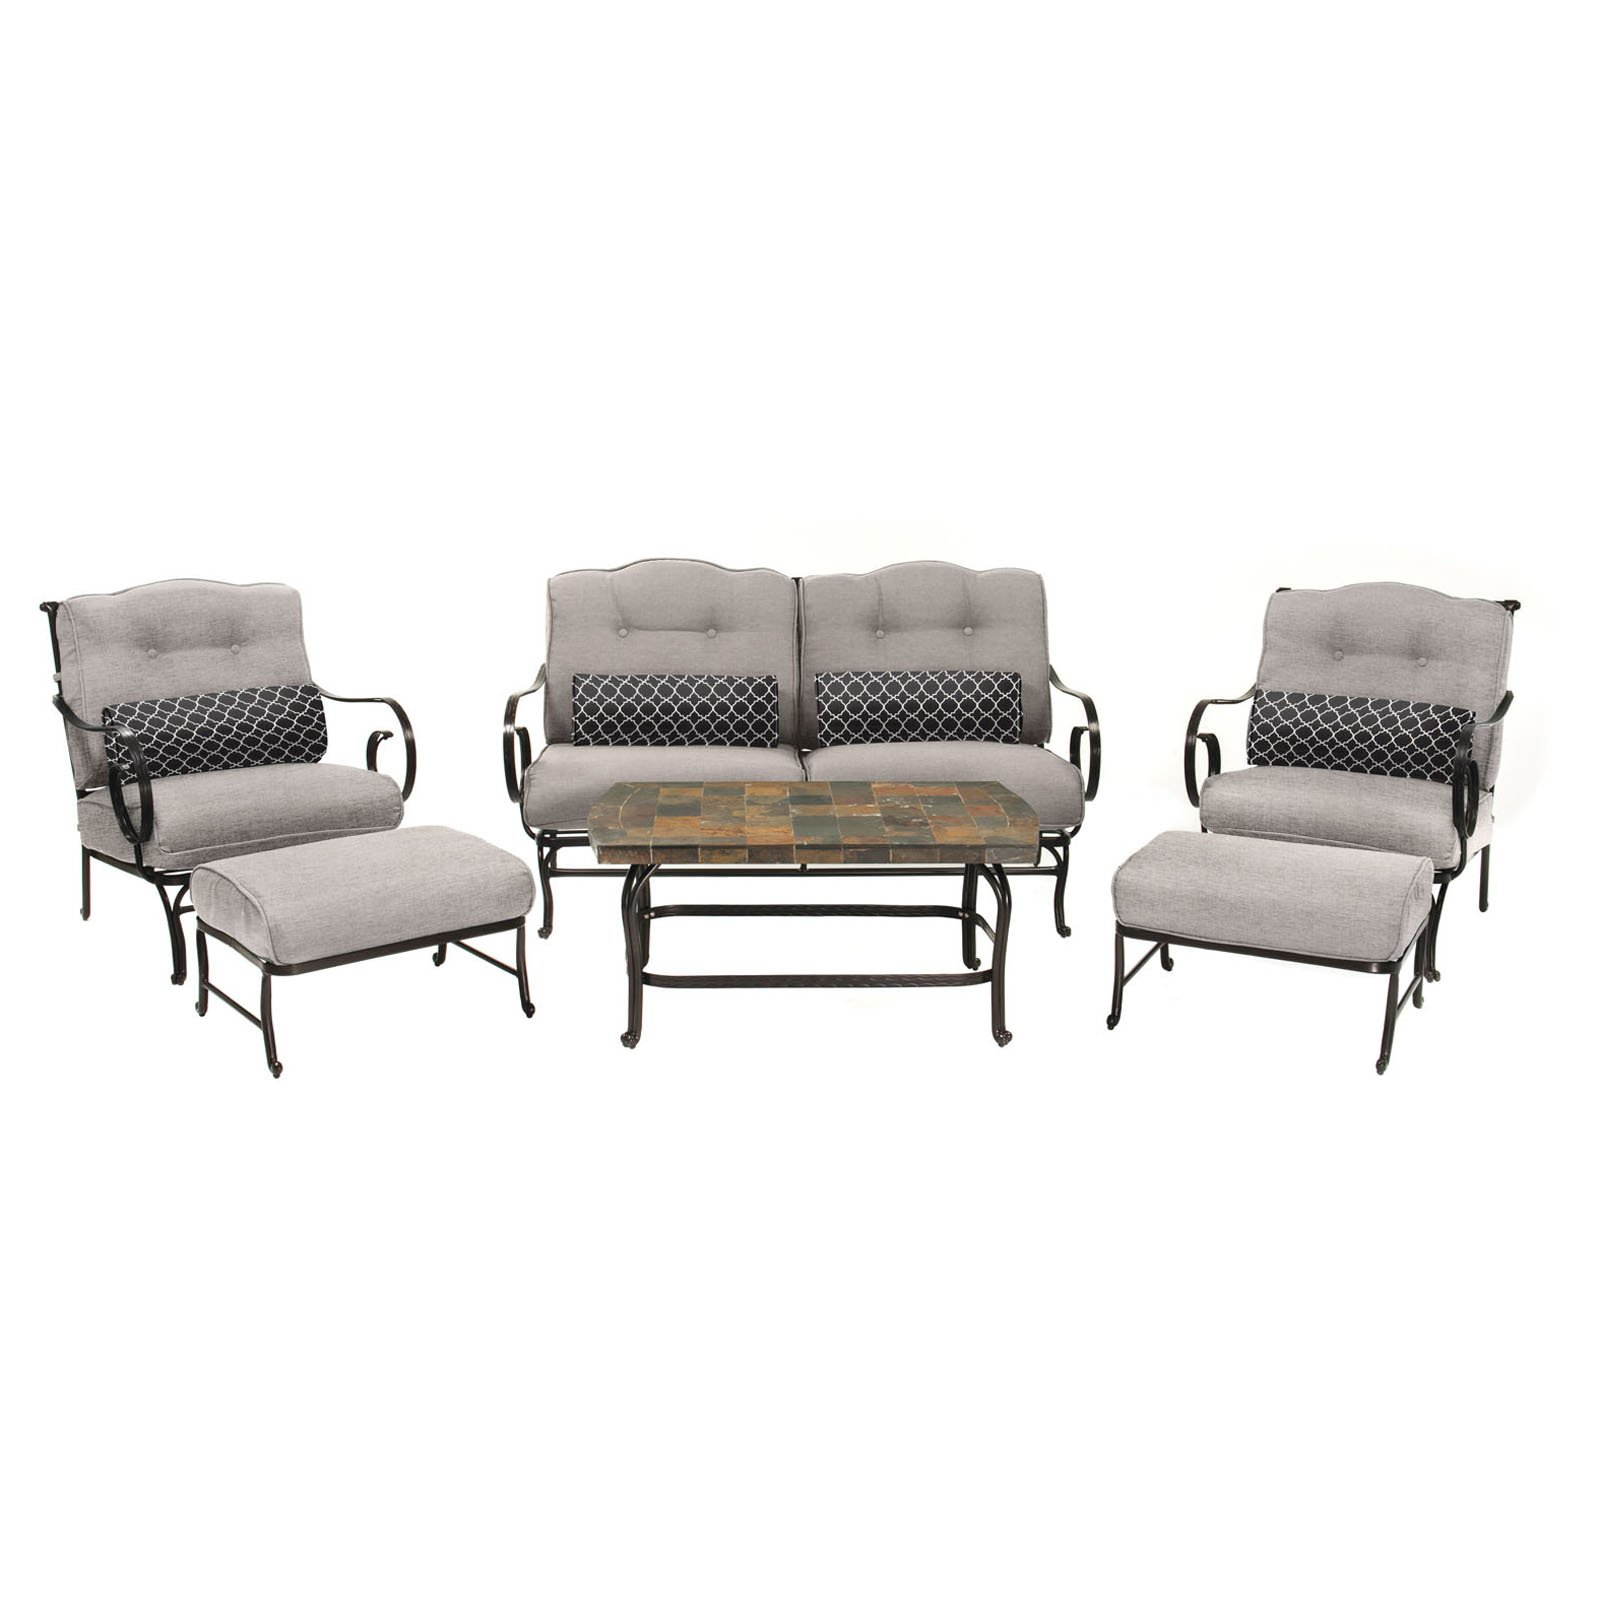 Hanover Outdoor Oceana 6-Piece Patio Set with Stone-Top Coffee Table by Hanover Outdoor